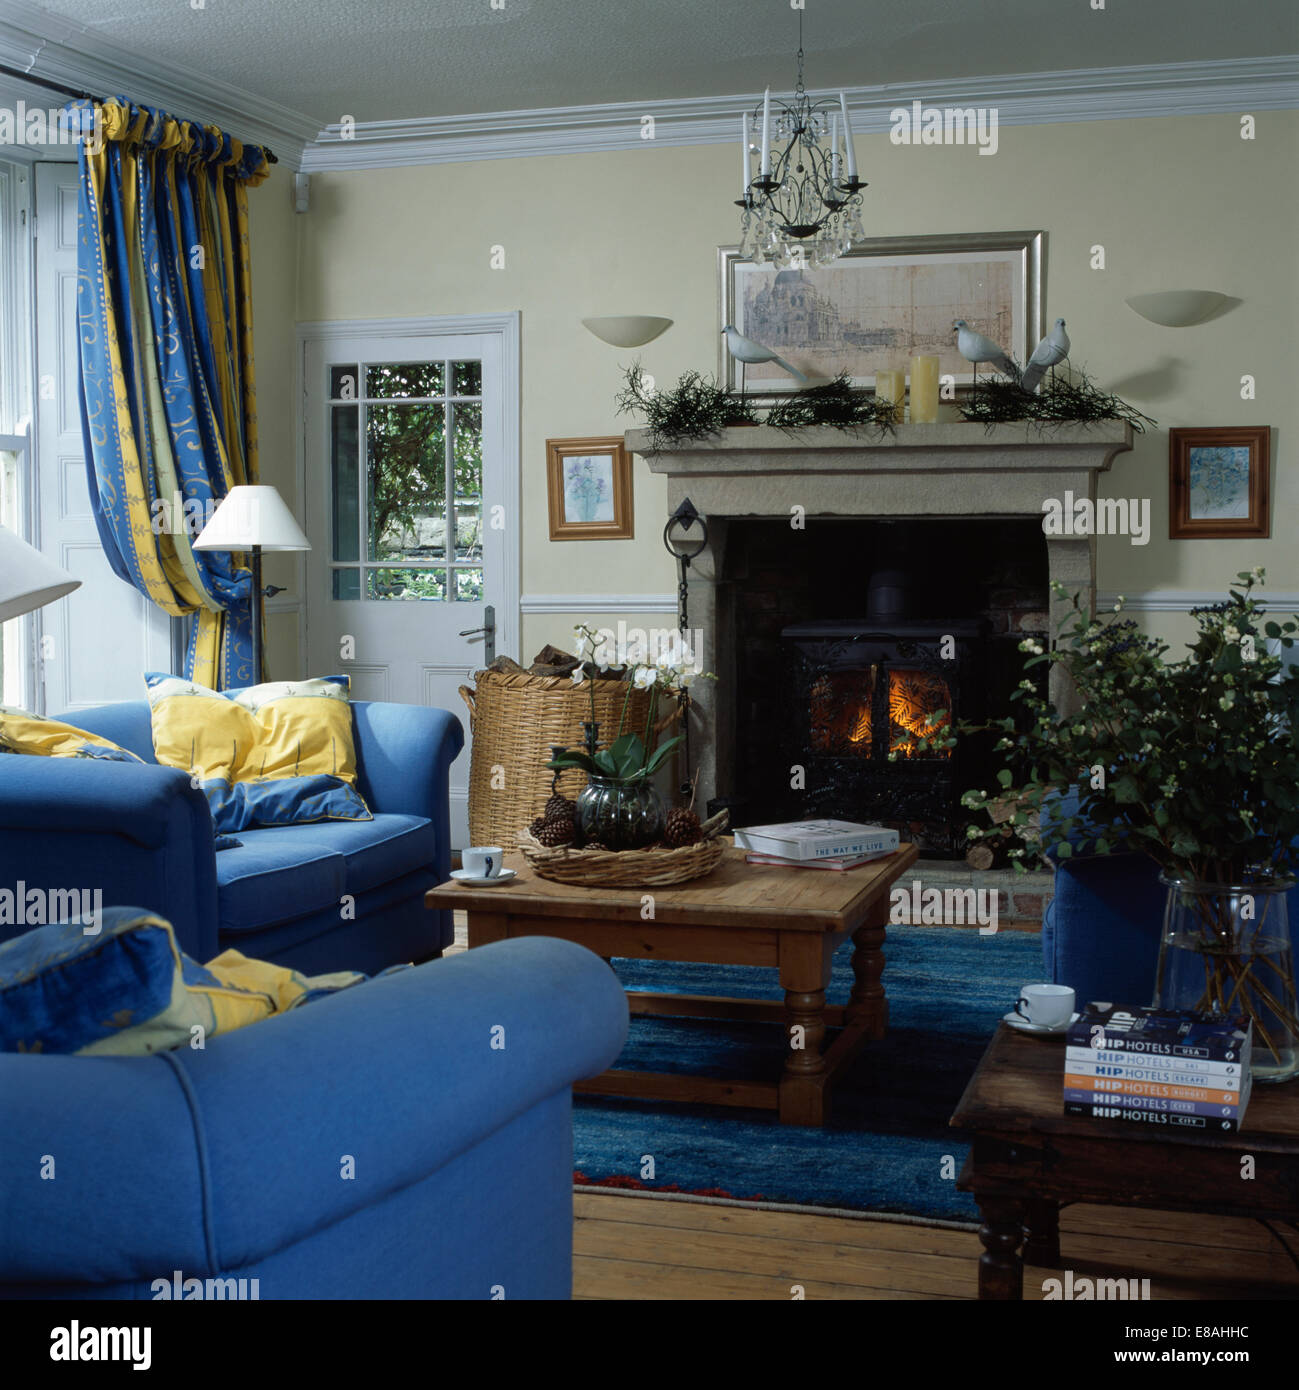 Country Blue Living Room: Blue Sofas In Country Living Room With Wood-burning Stove